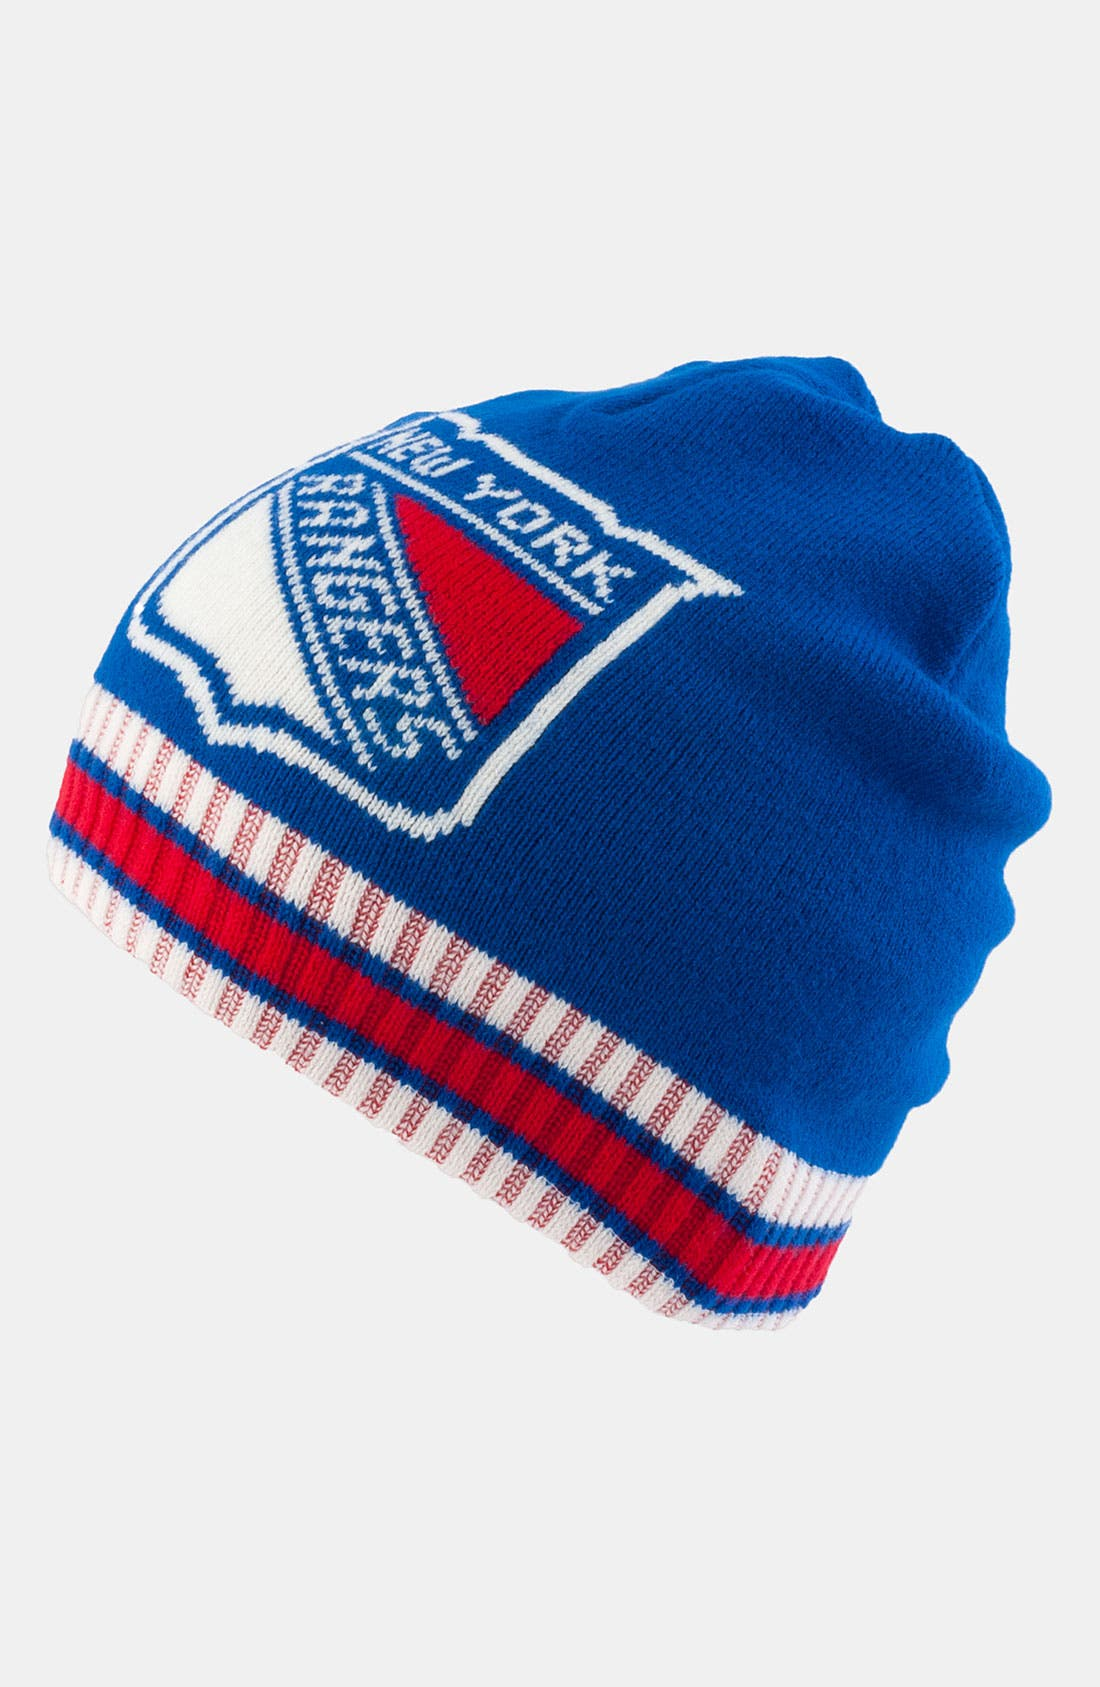 Main Image - American Needle 'New York Rangers - Right Wing' Knit Hat